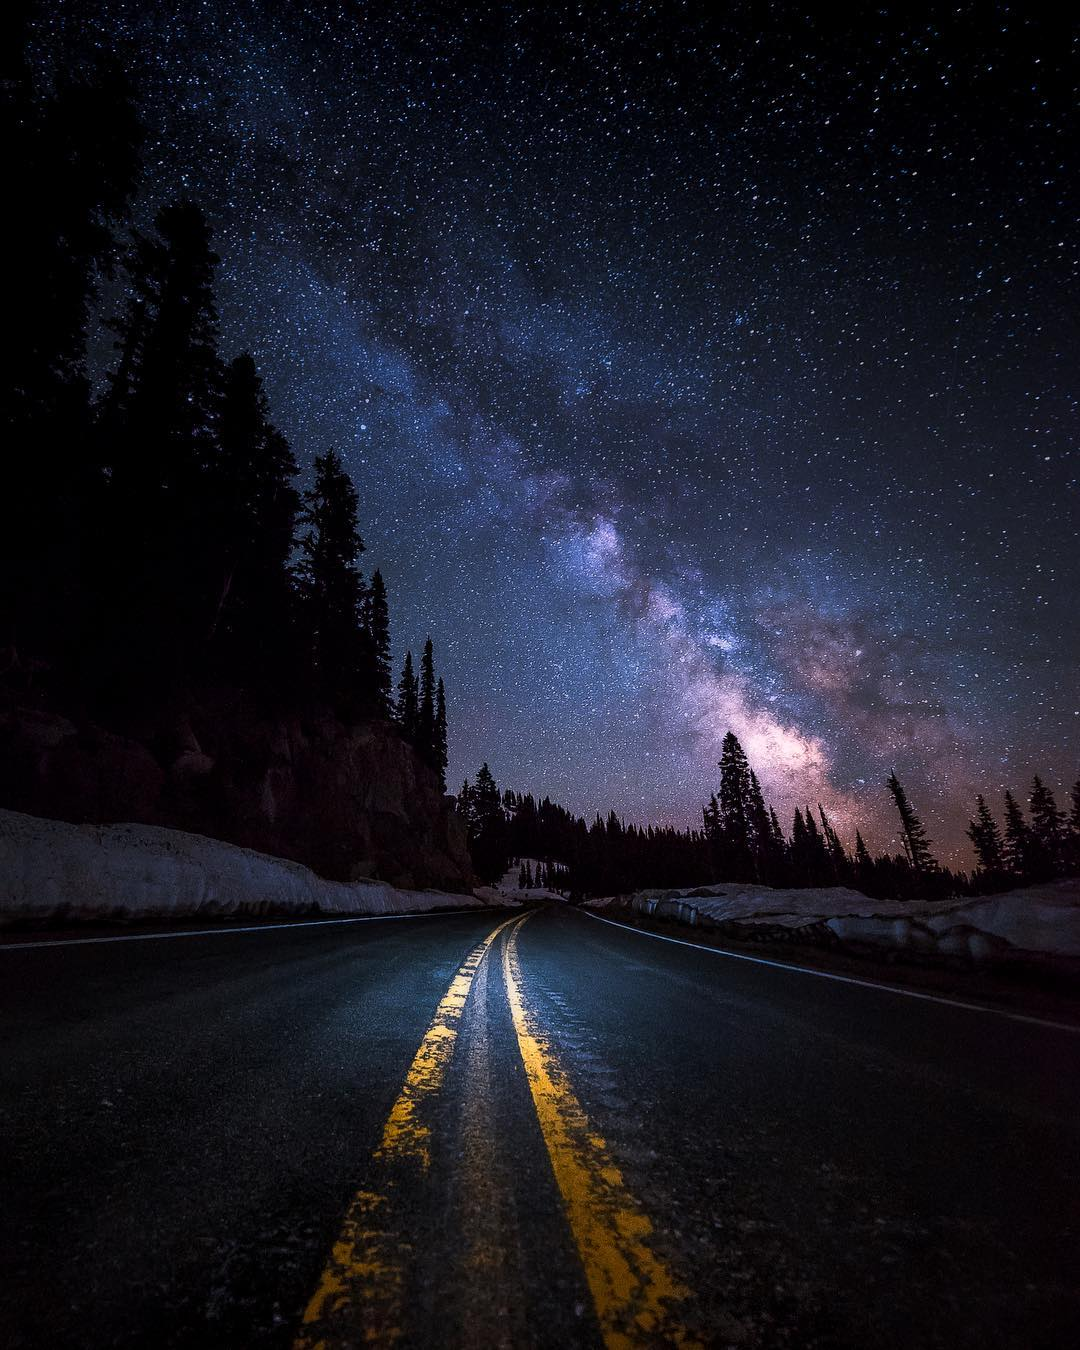 11 Things to Consider When Shooting The Night Sky